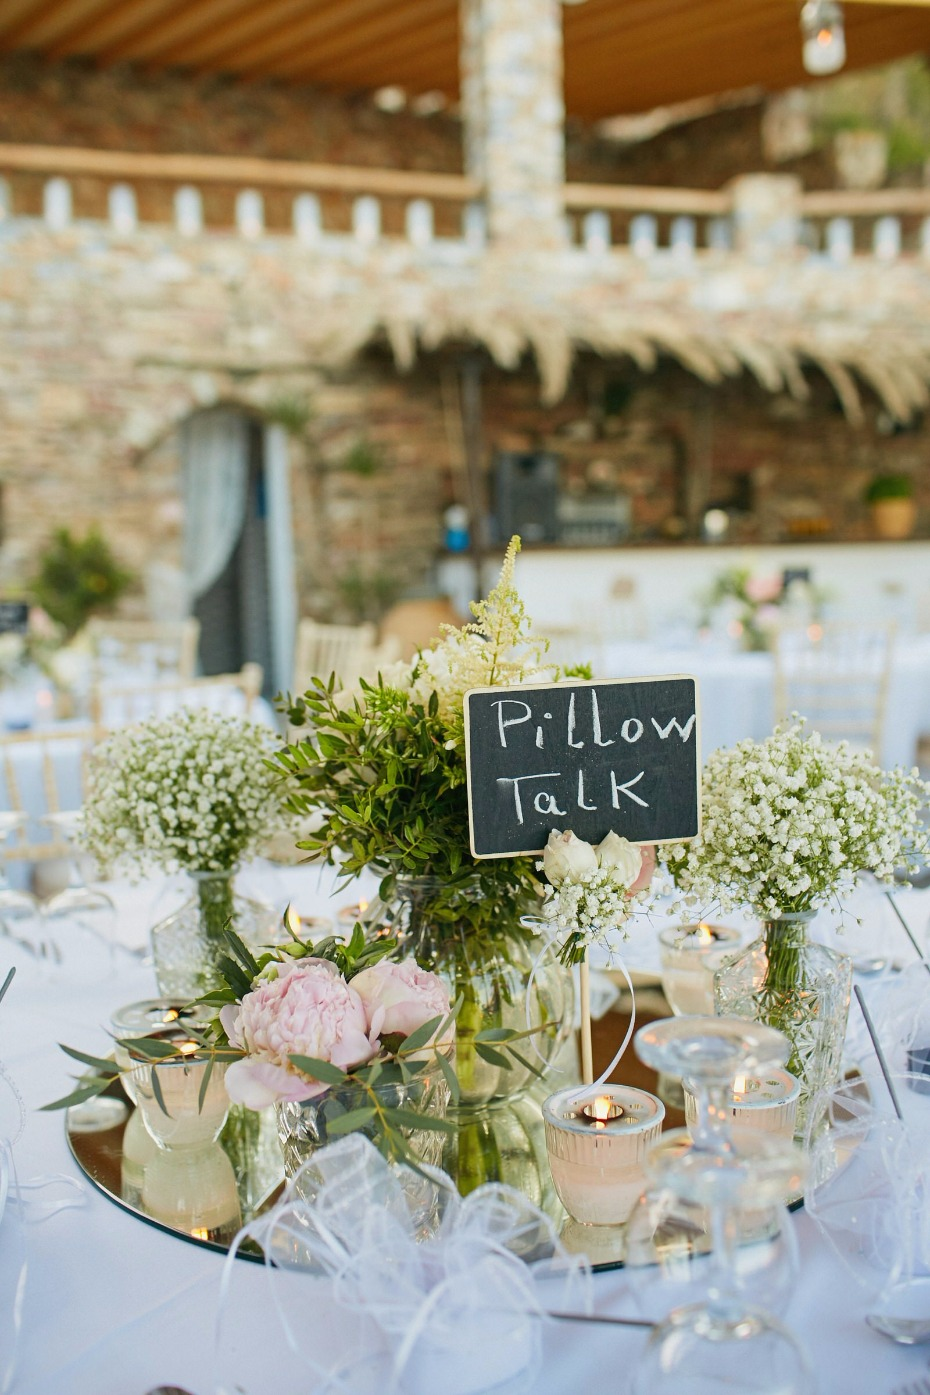 pillow talk wedding table name and whimsial centerpiece